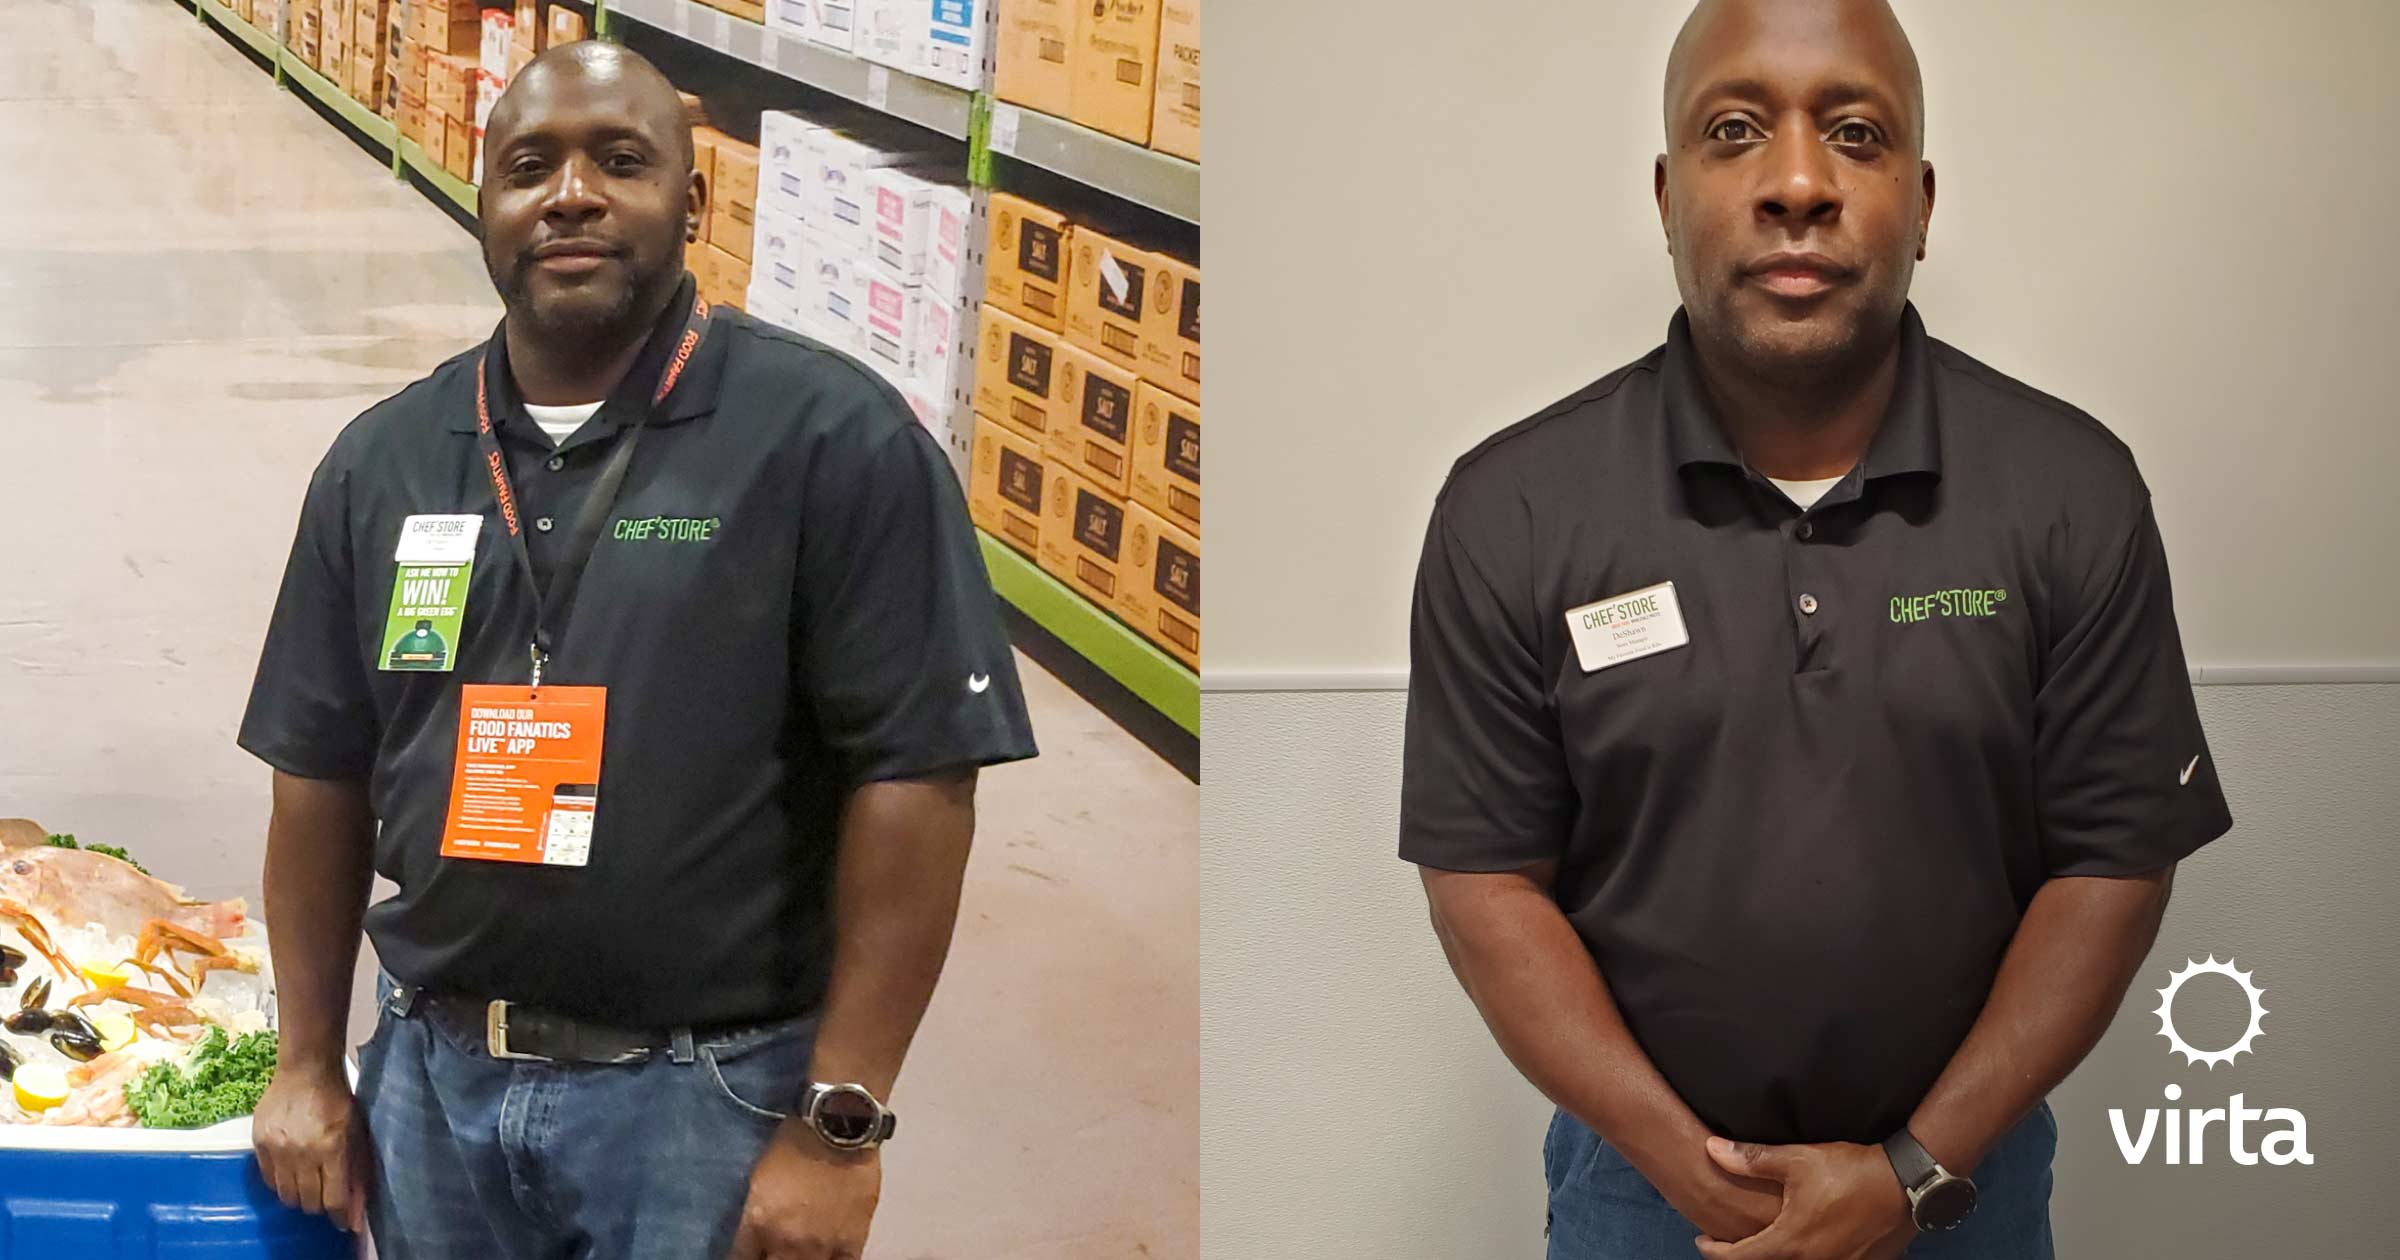 Deshawn lost 30 pounds and improving his blood sugars on Virta